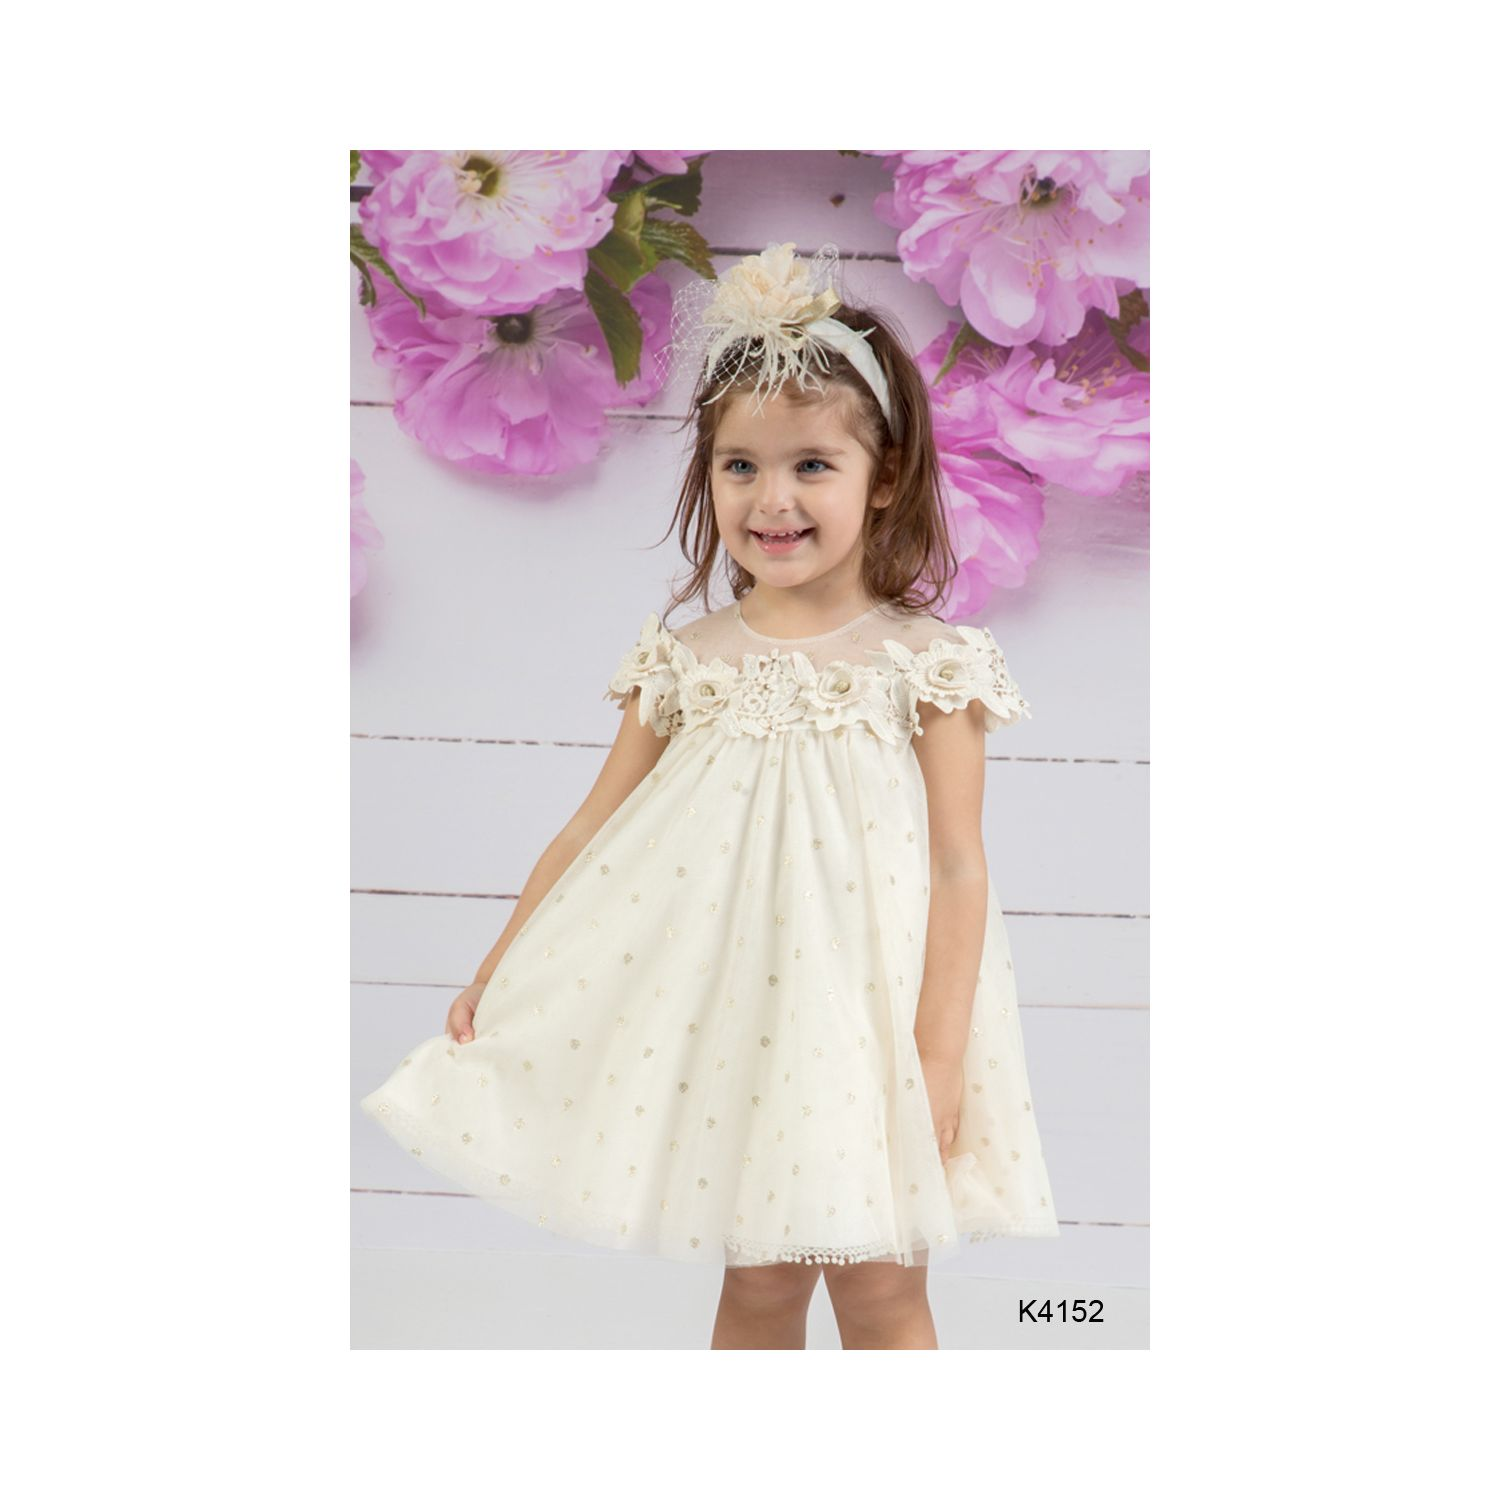 Christening clothes for girls K 4152